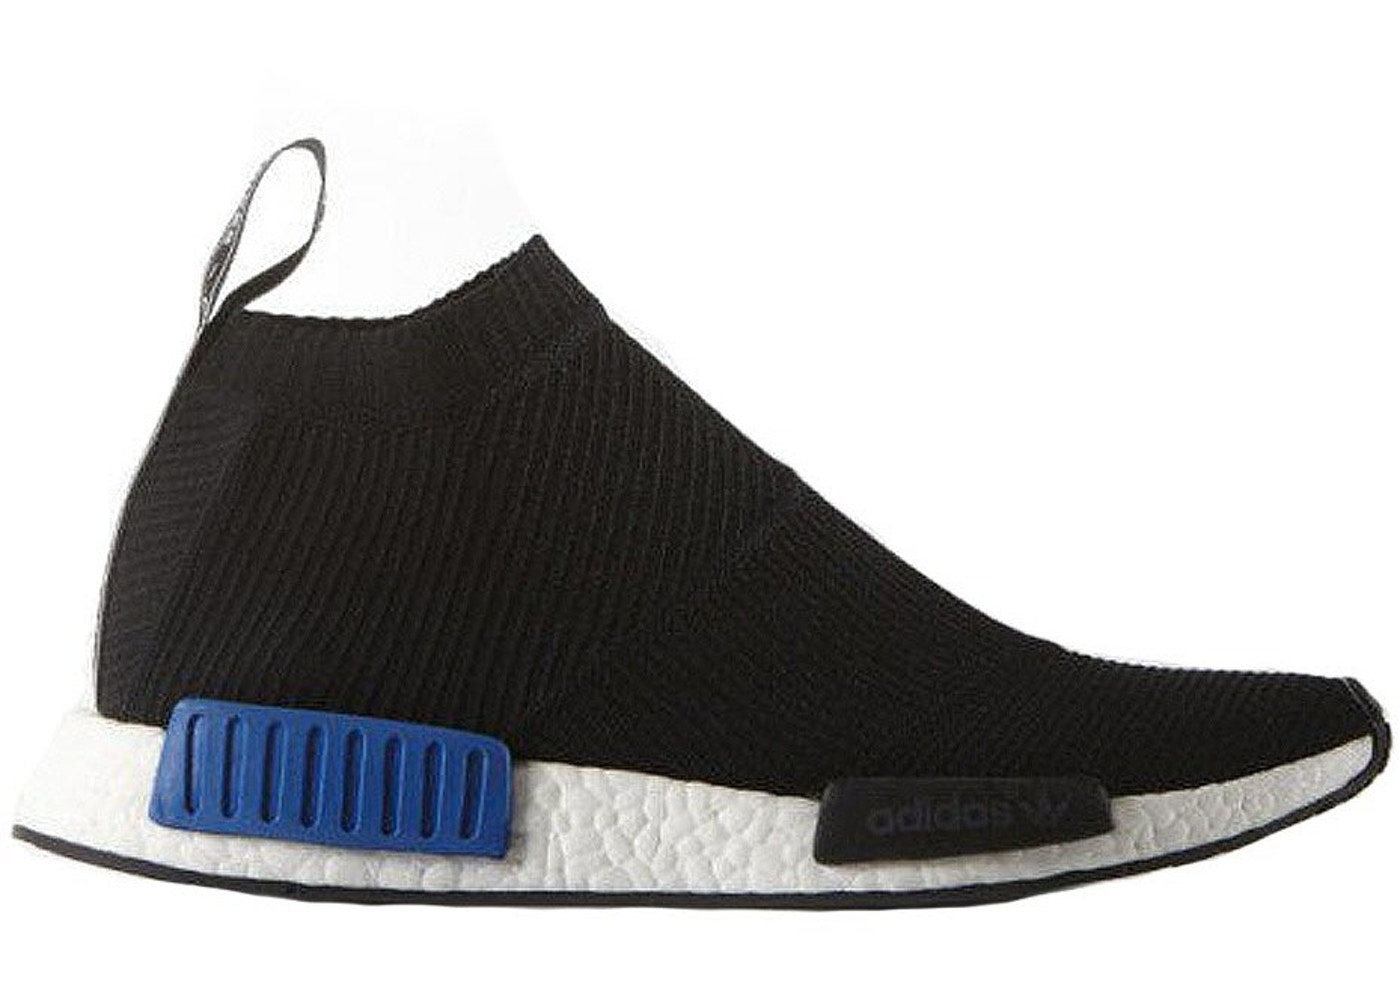 finest selection 05d64 8e70a adidas NMD City Sock Core Black Lush Blue